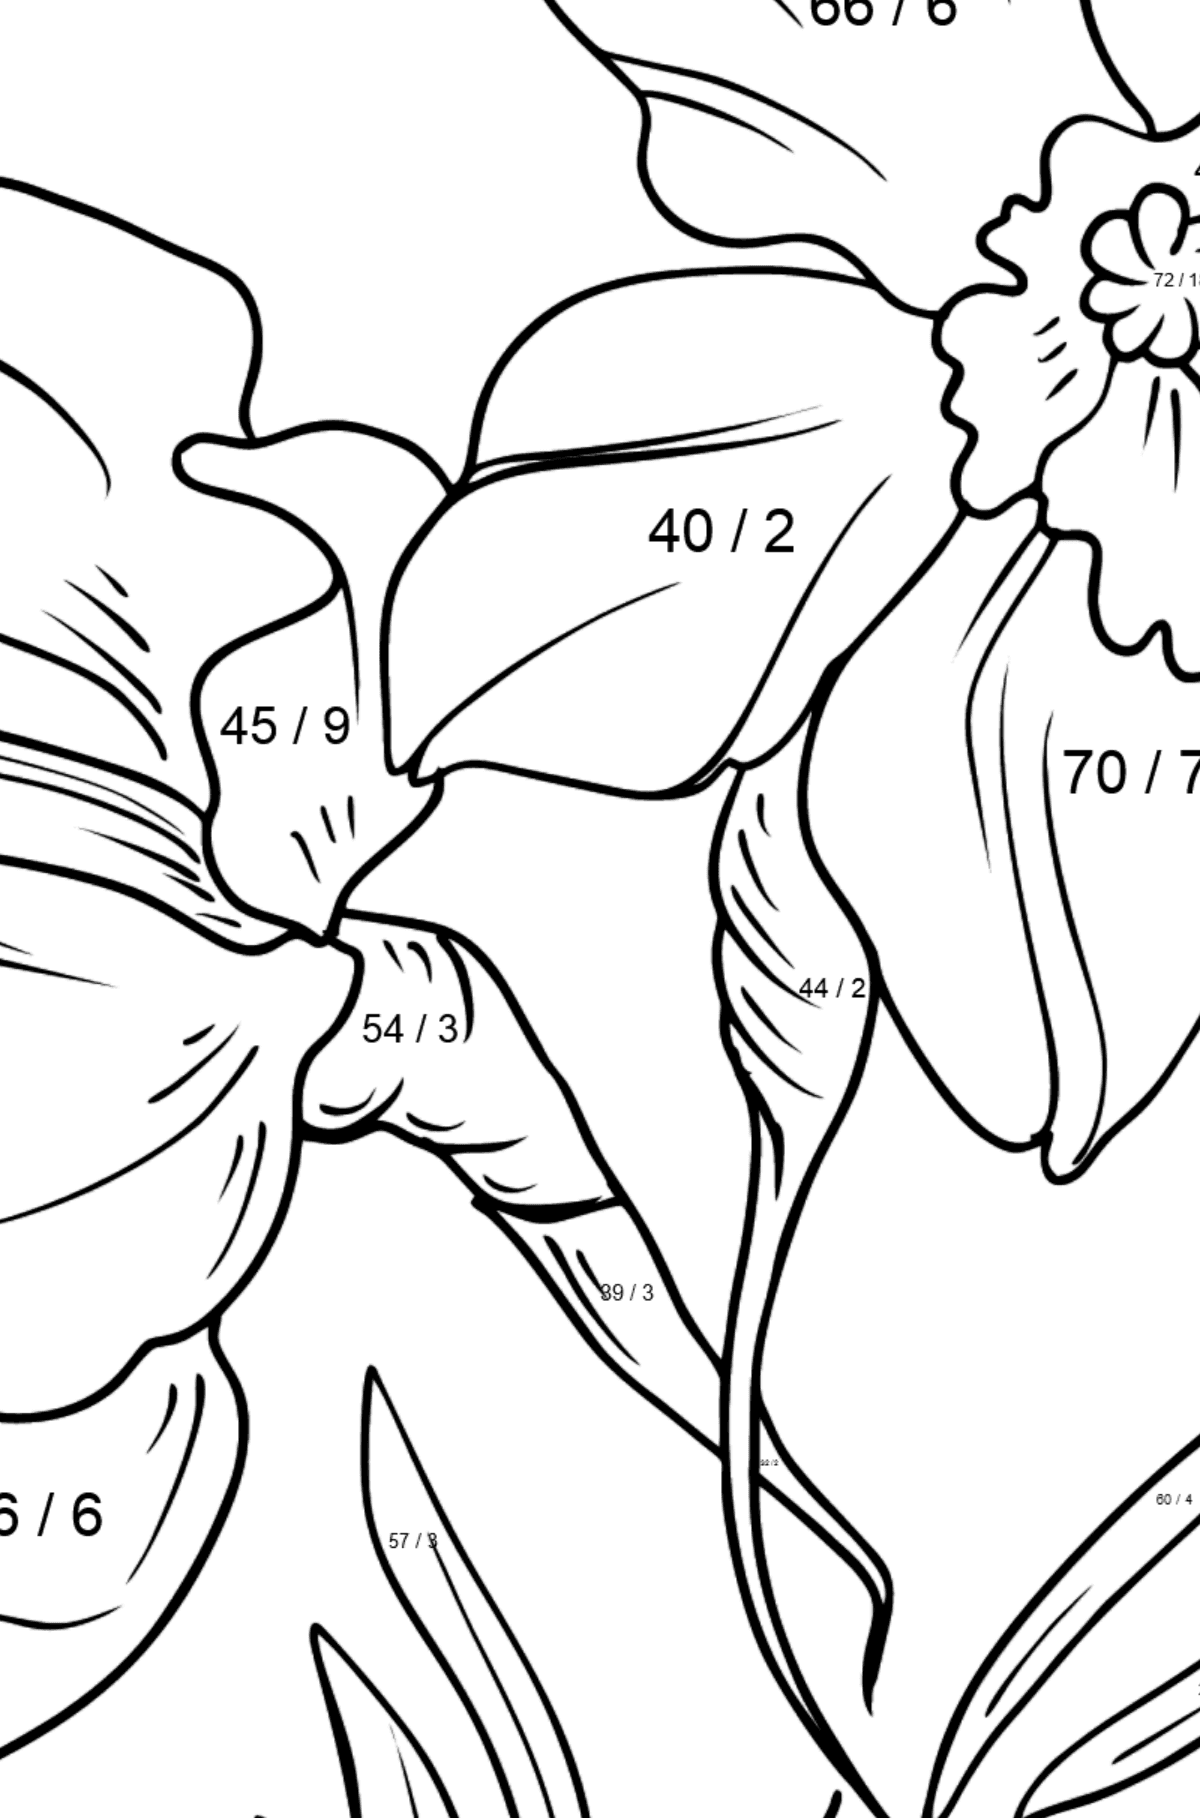 Flower Coloring Page - Daffodils - Math Coloring - Division for Kids